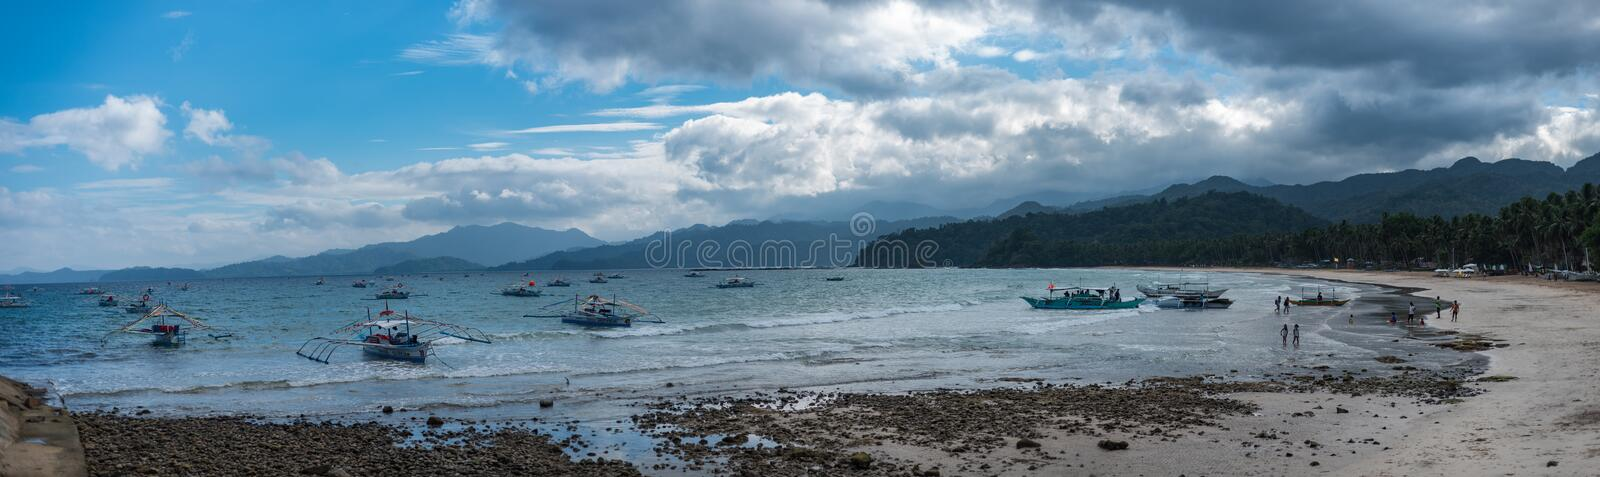 Panorama d'une plage aux Philippines photographie stock